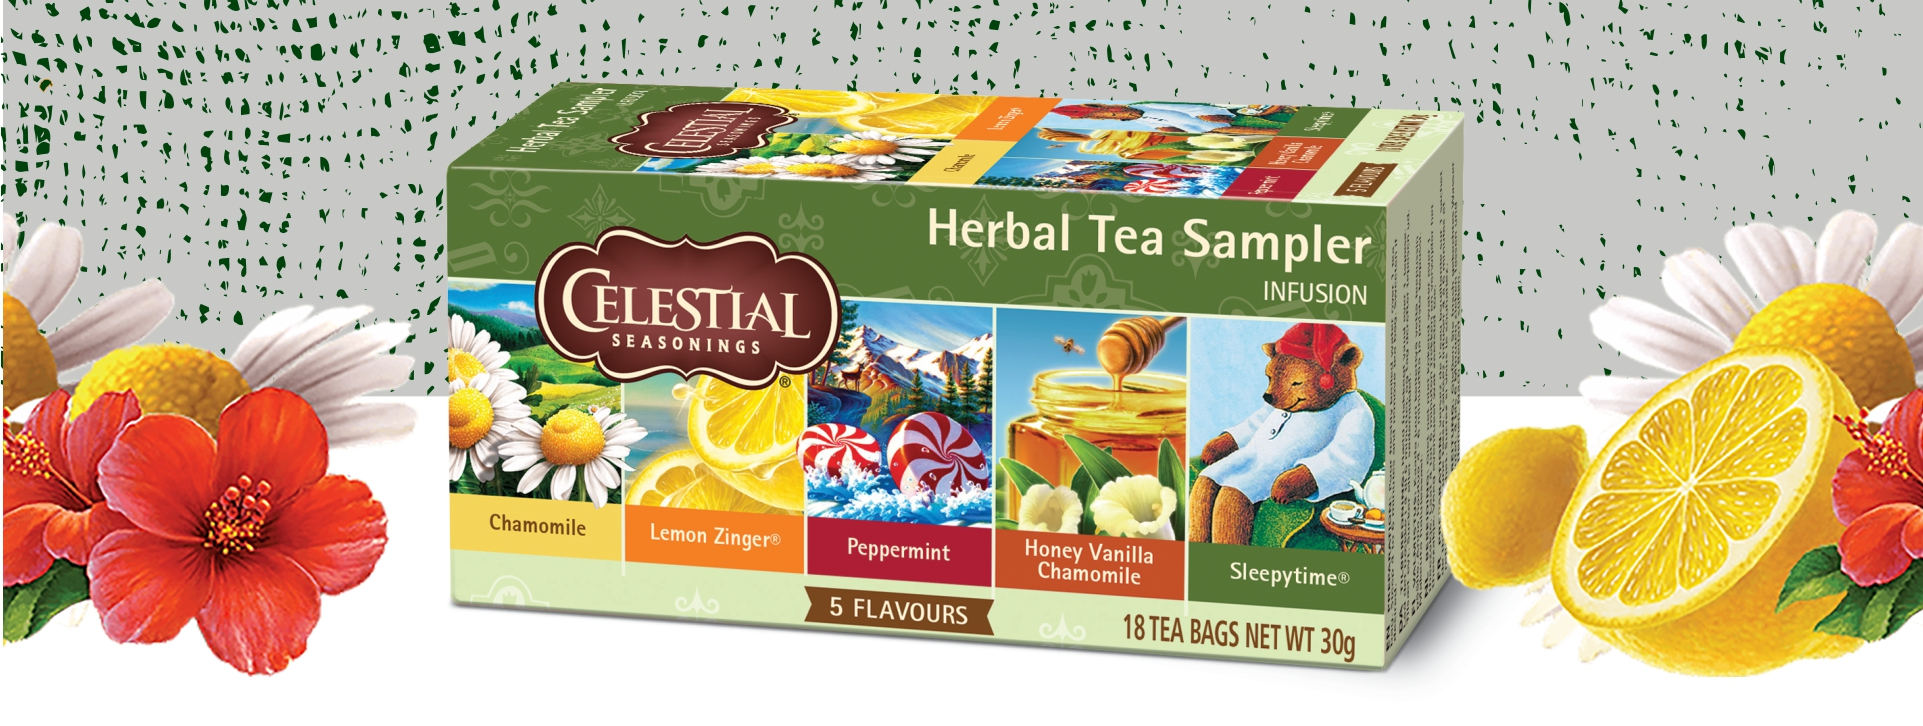 herbal_tea_sampler_titel